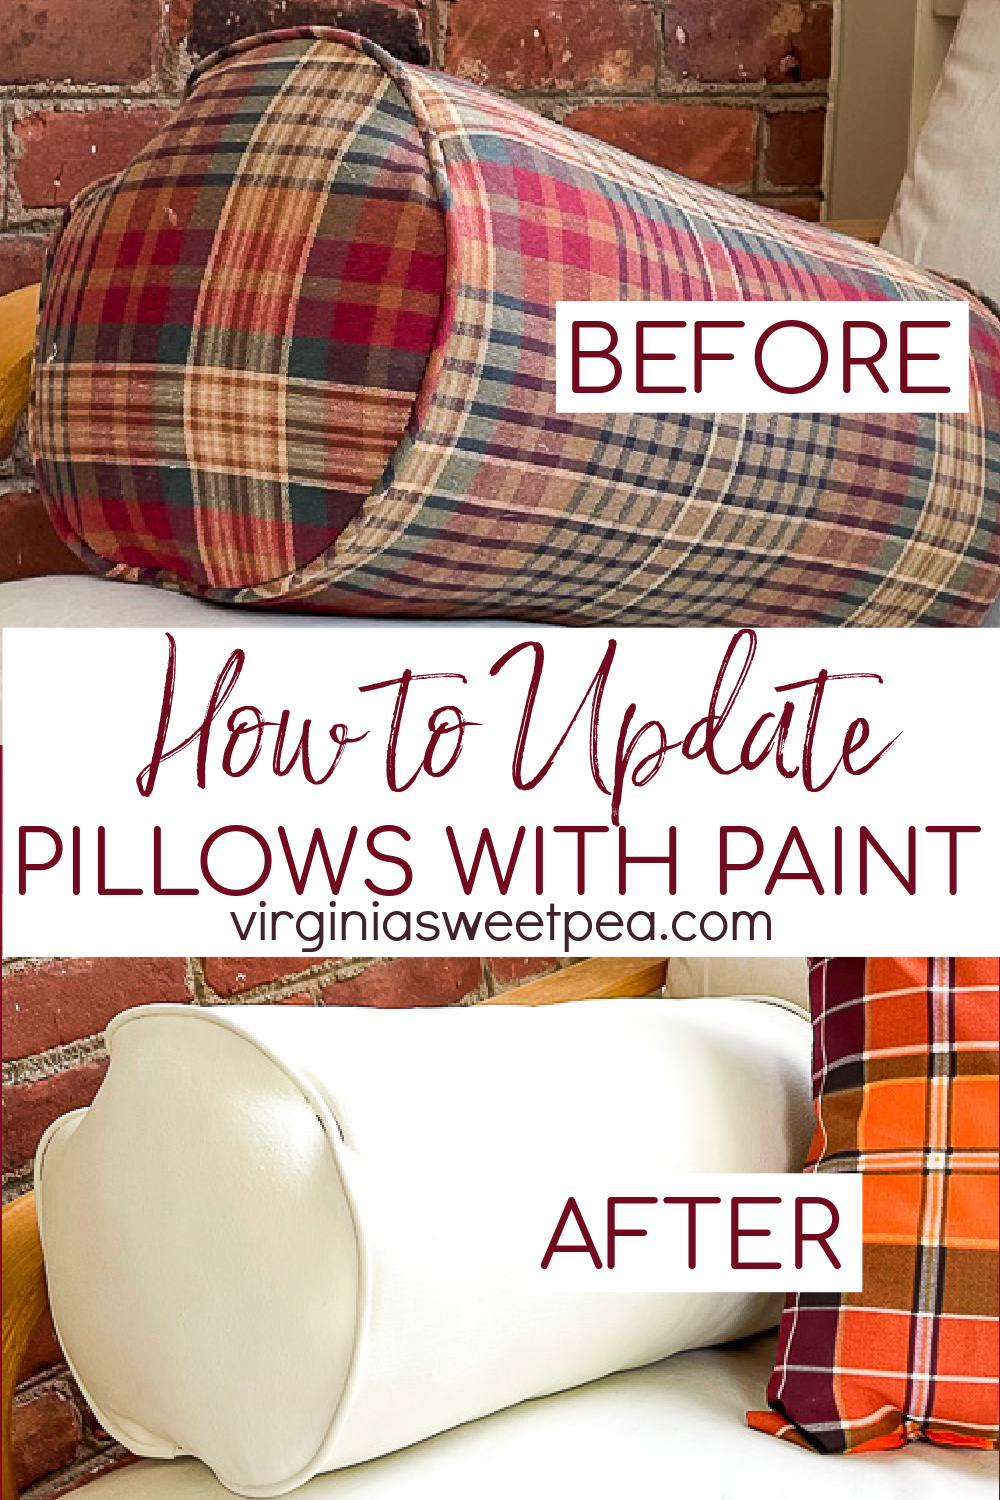 Pillow update with paint and fabric medium